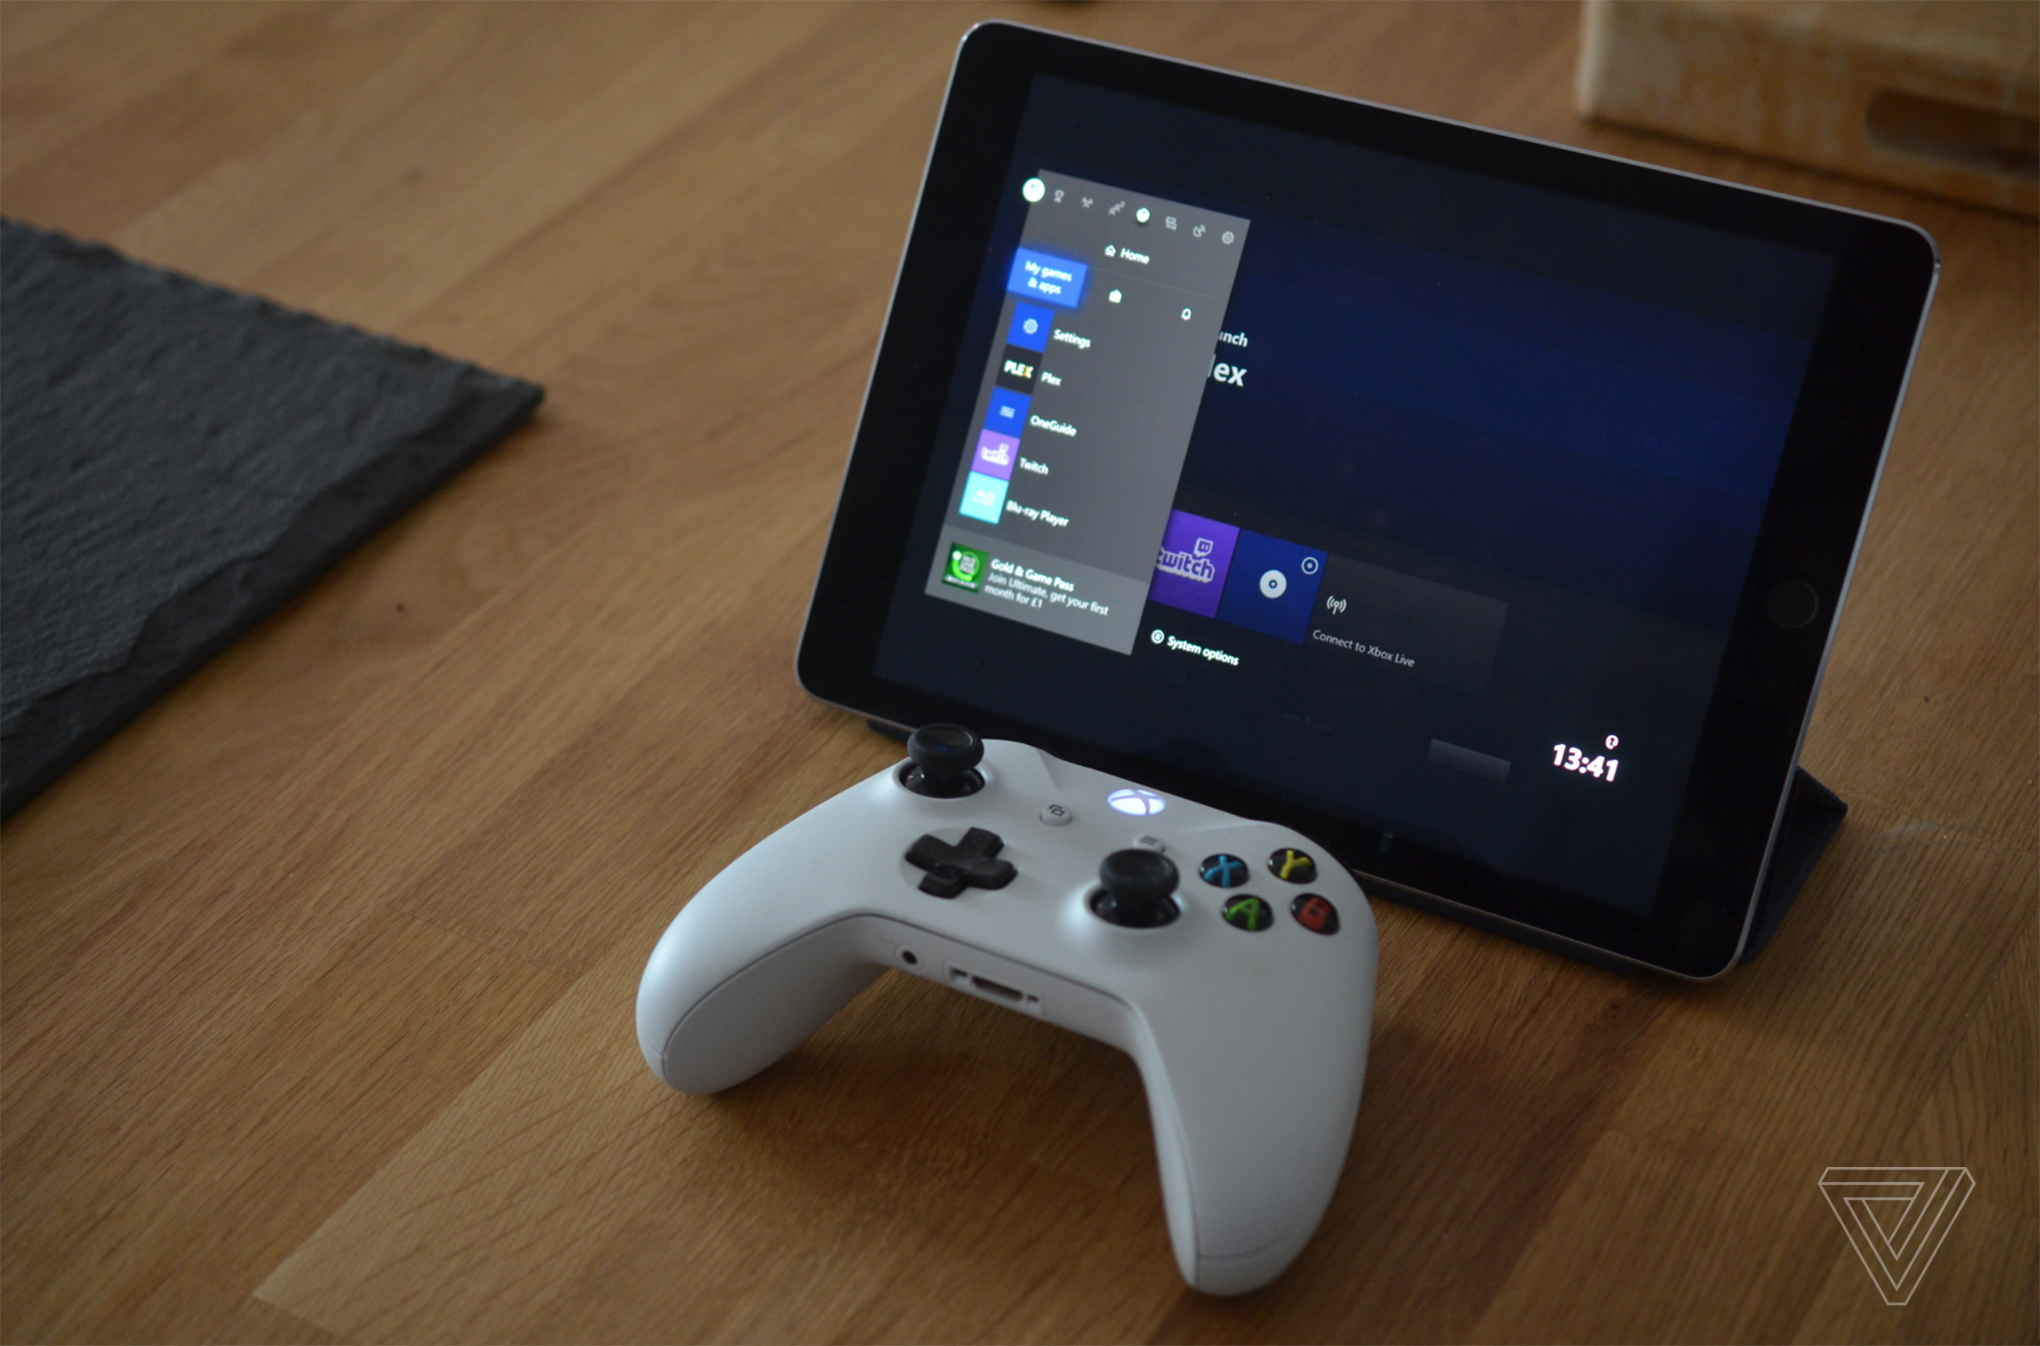 Apple's Xbox and PS4 controller support turns an iPad into a